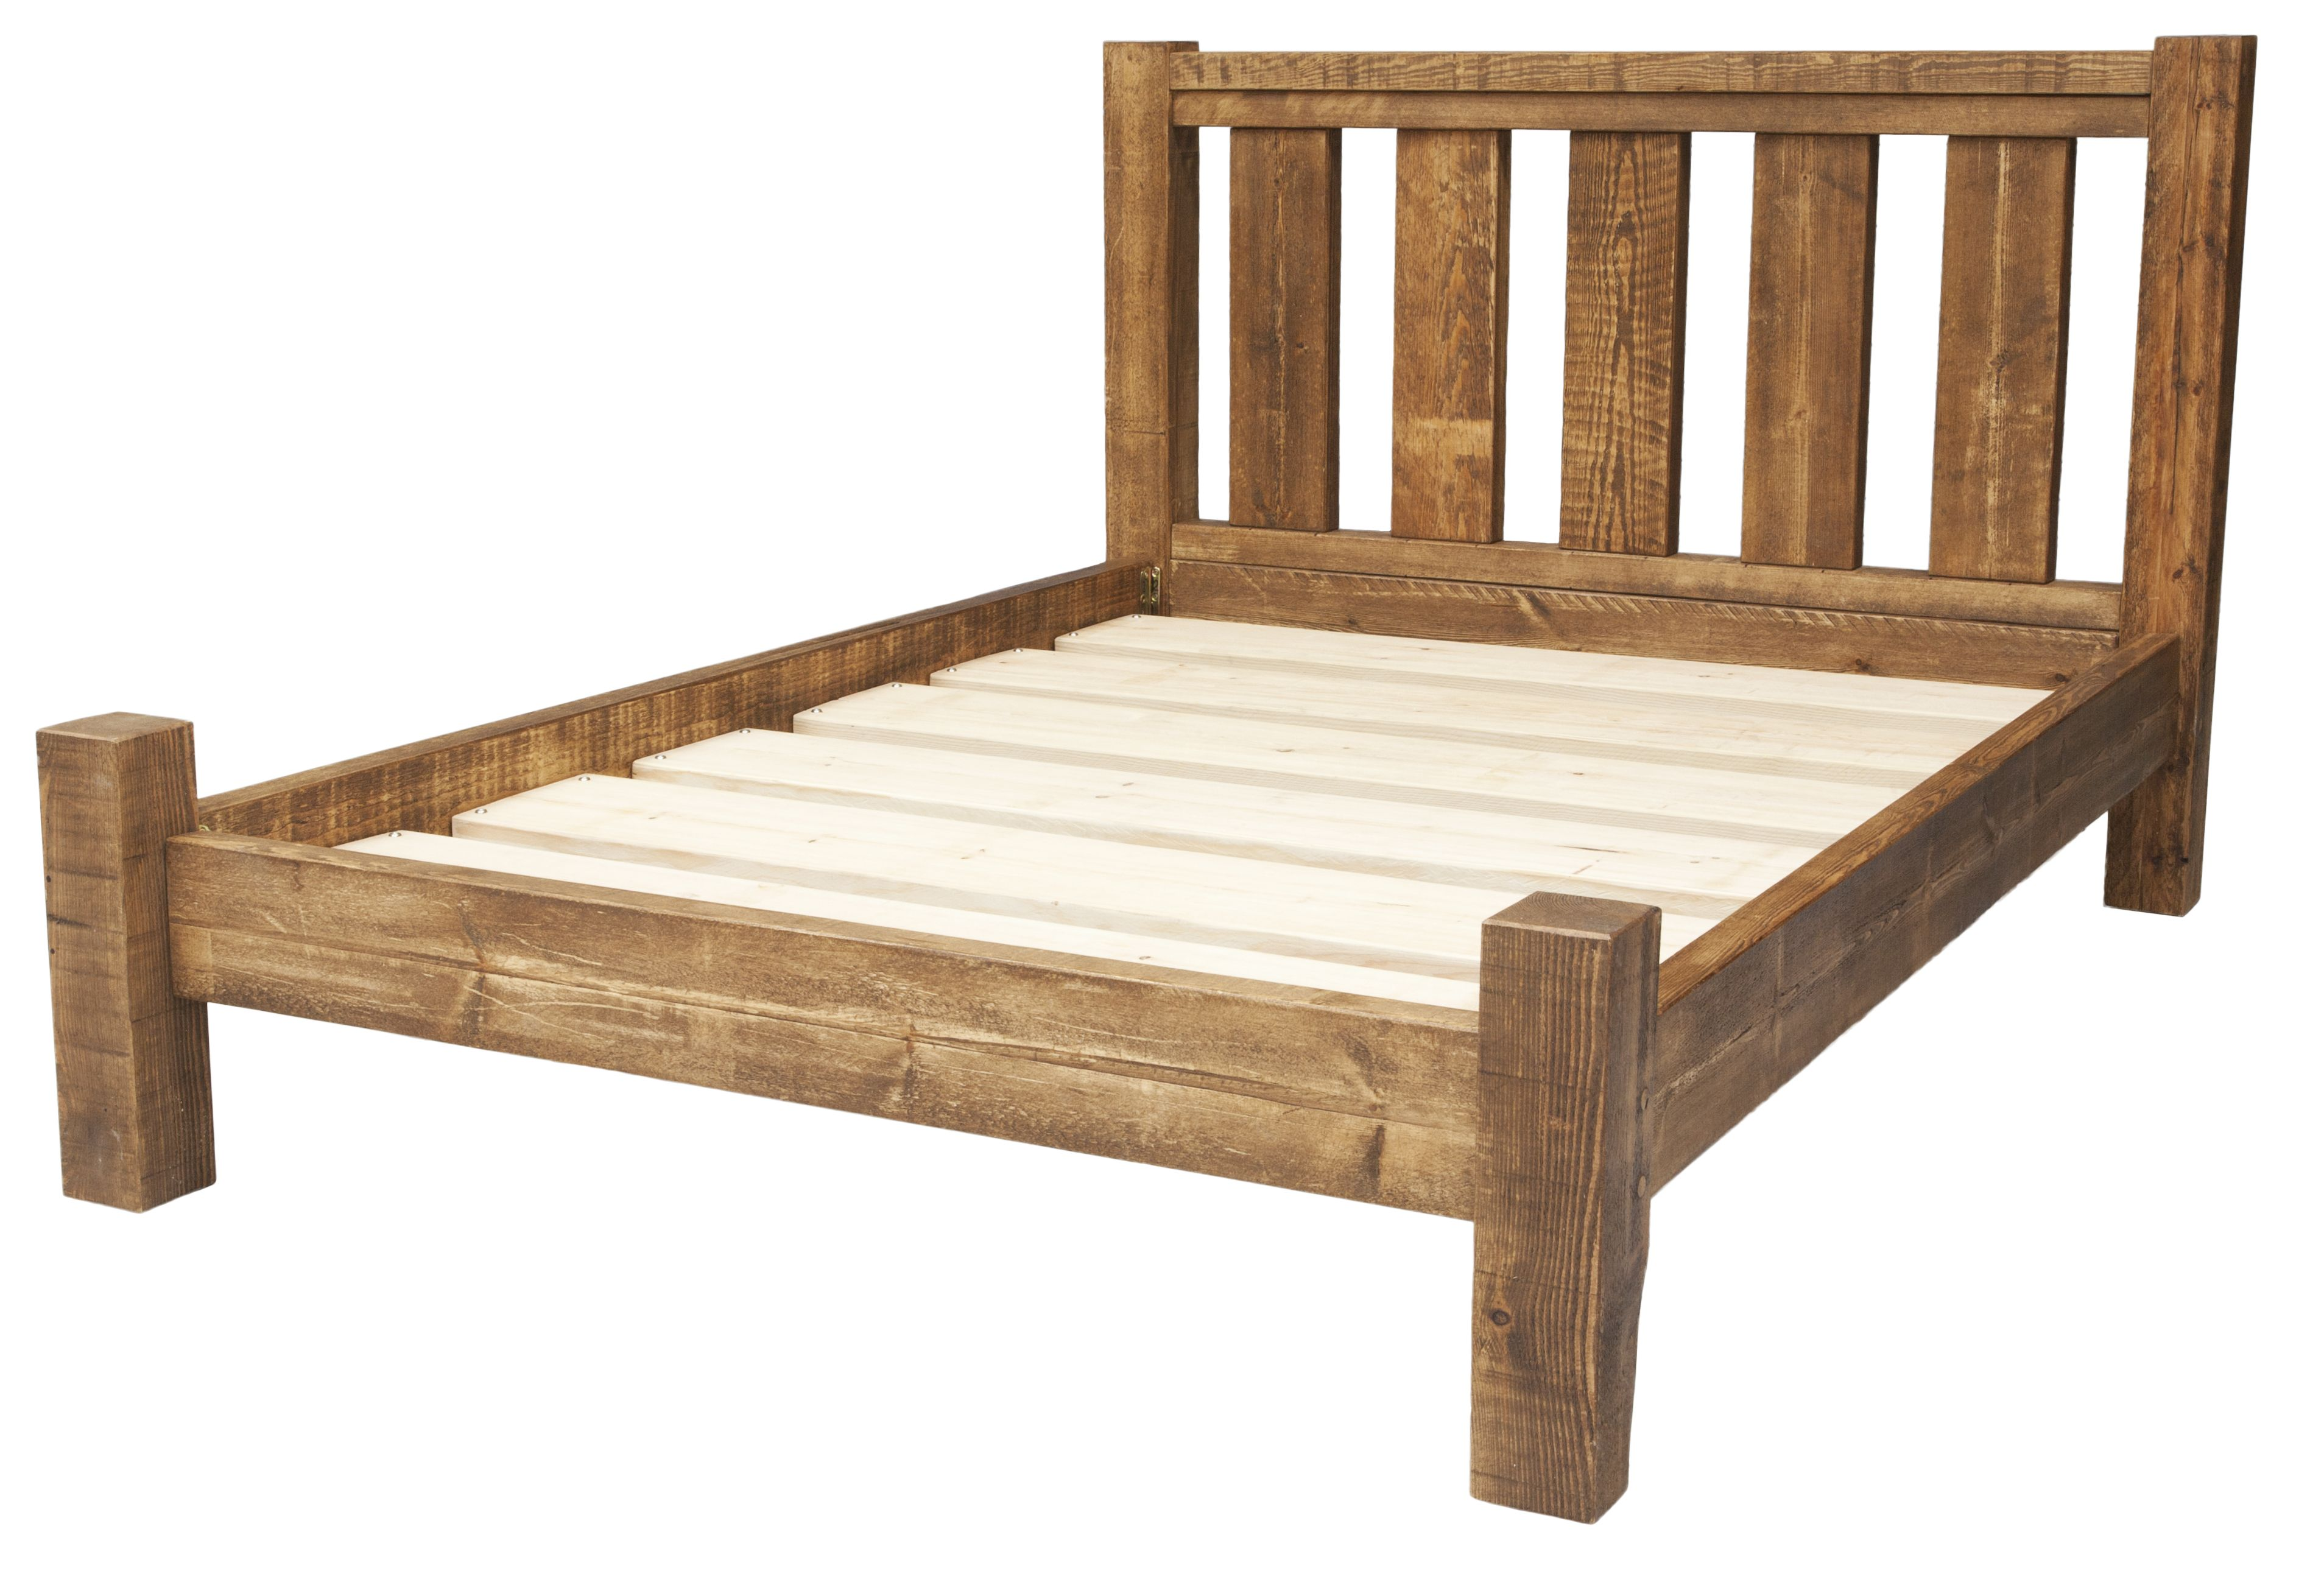 ... Bed Frame Double Bed Frame King Size Bed Frame Super King Size Bed